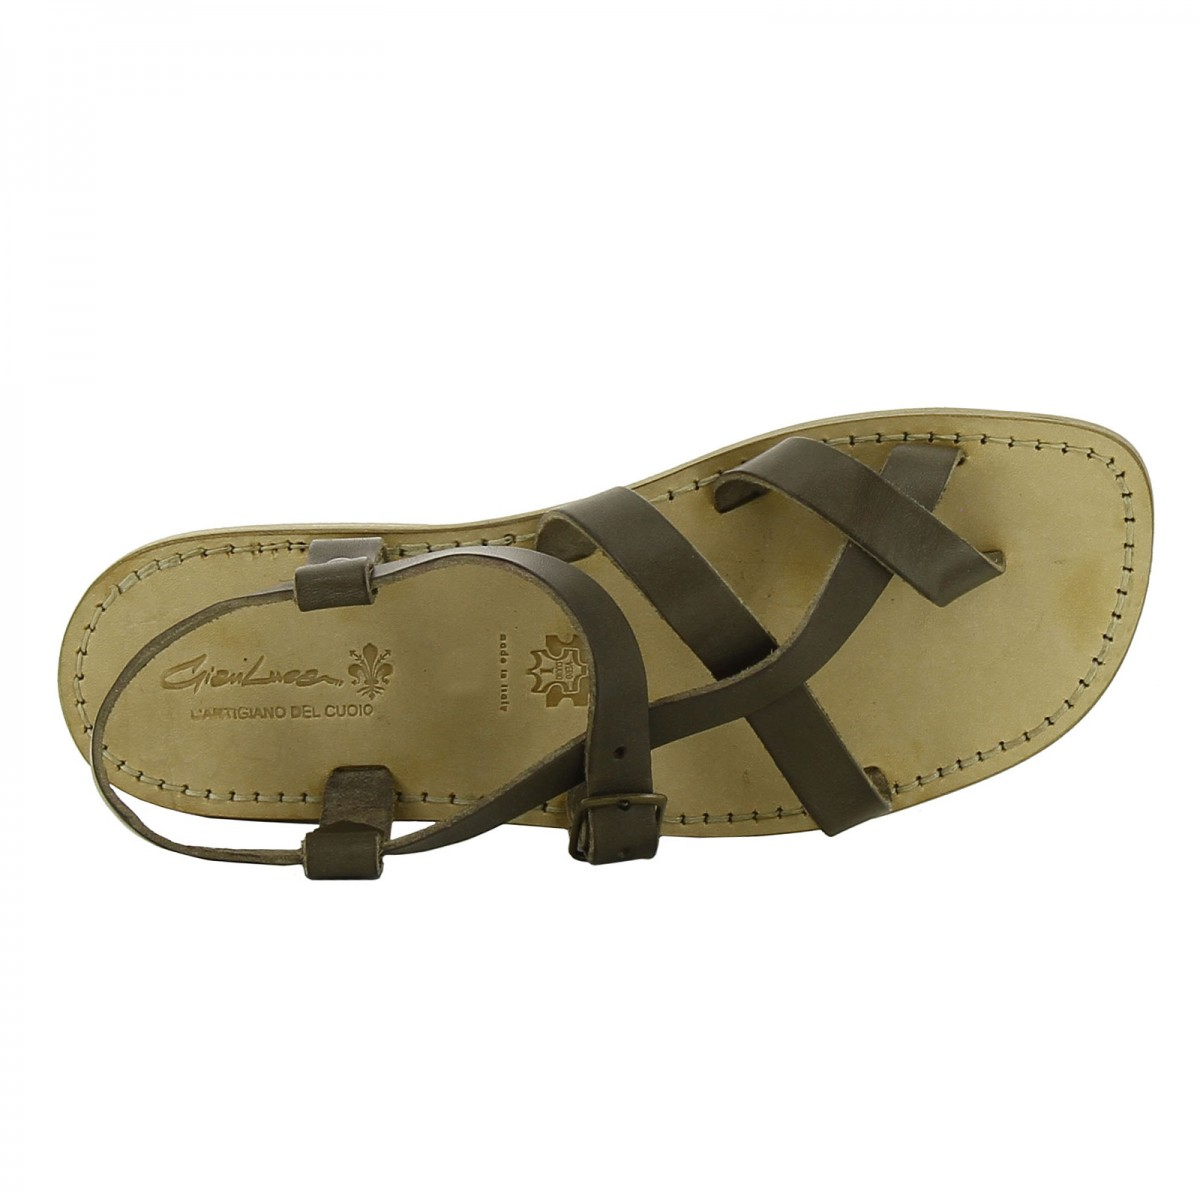 2123a0ce725 ... Gladiator sandals for men in mud color calf leather ...